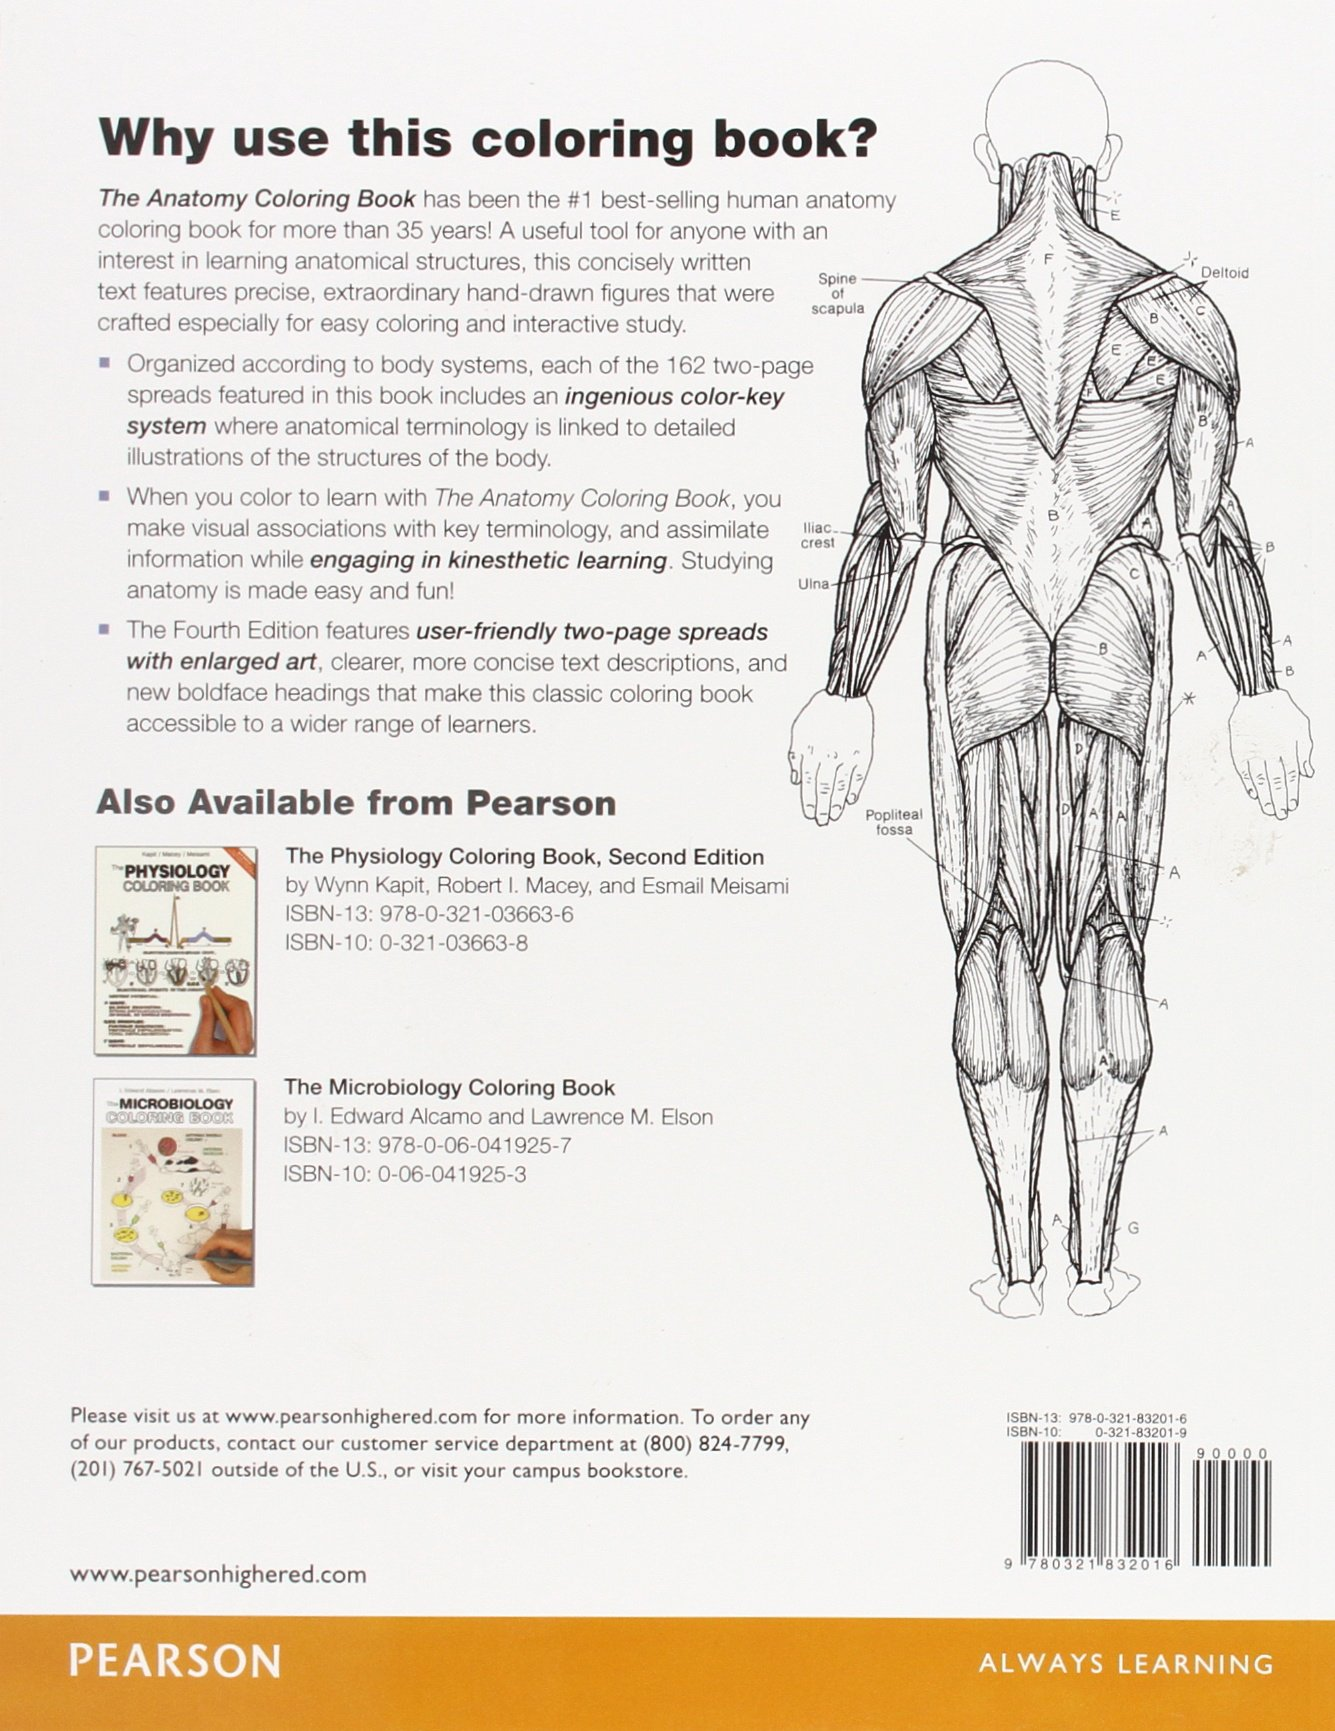 the anatomy coloring book 4th edition wynn kapit lawrence m elson 9780321832016 anatomy amazon canada - Physiology Coloring Book